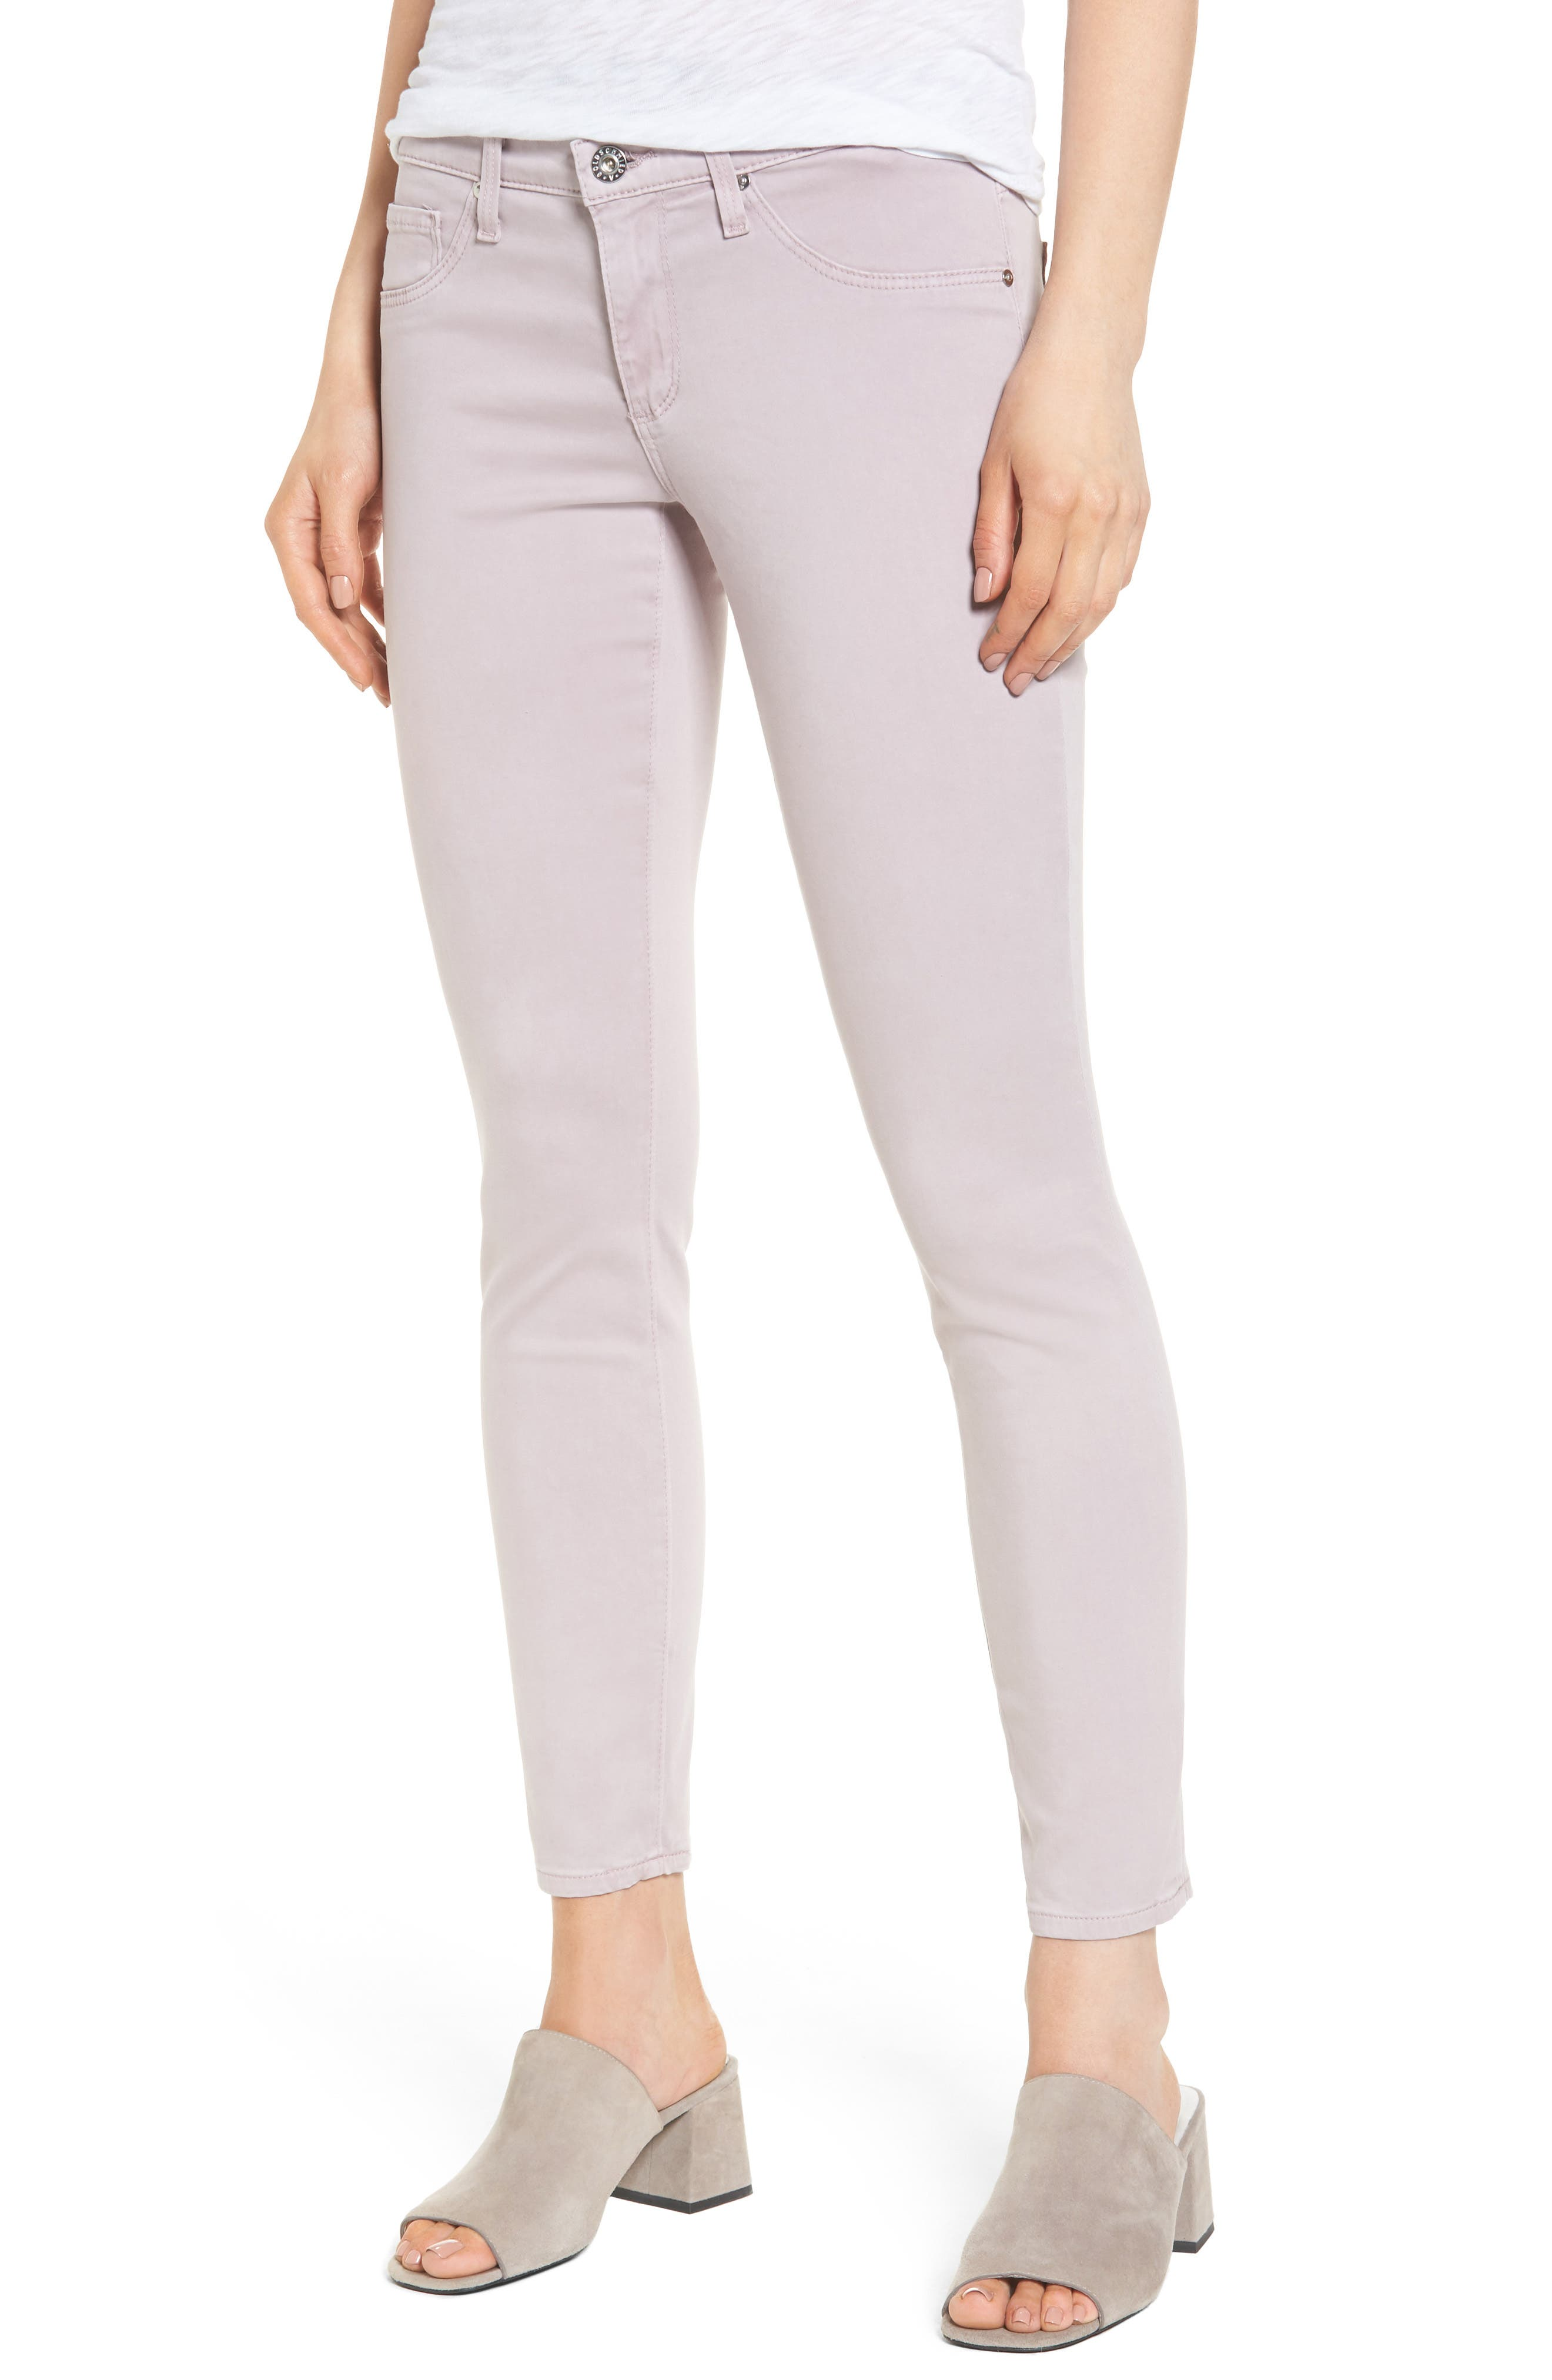 AG 'The Legging' Coated Ankle Jeans | Nordstrom